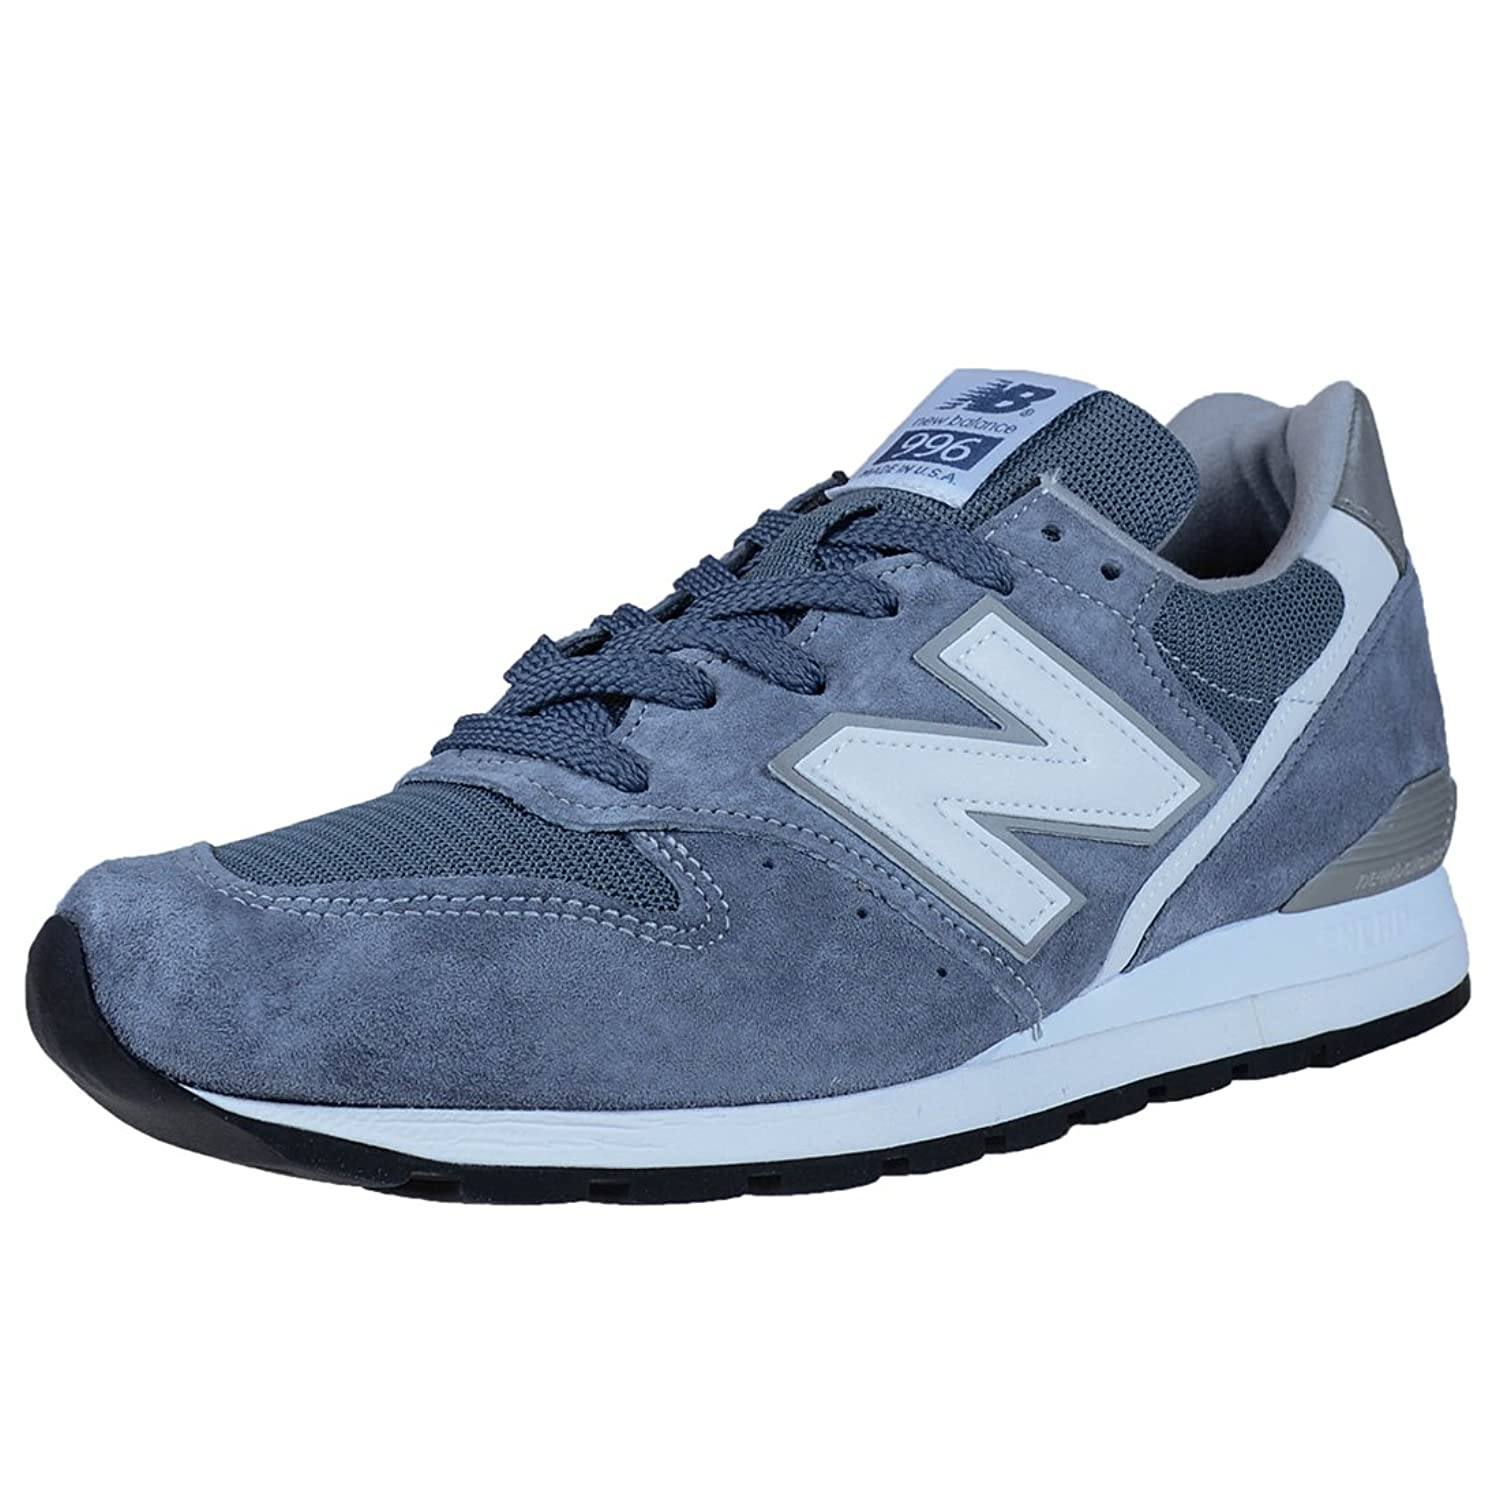 huge discount d77dd 7ba71 new balance 997 zappos,new balance abzorb 940